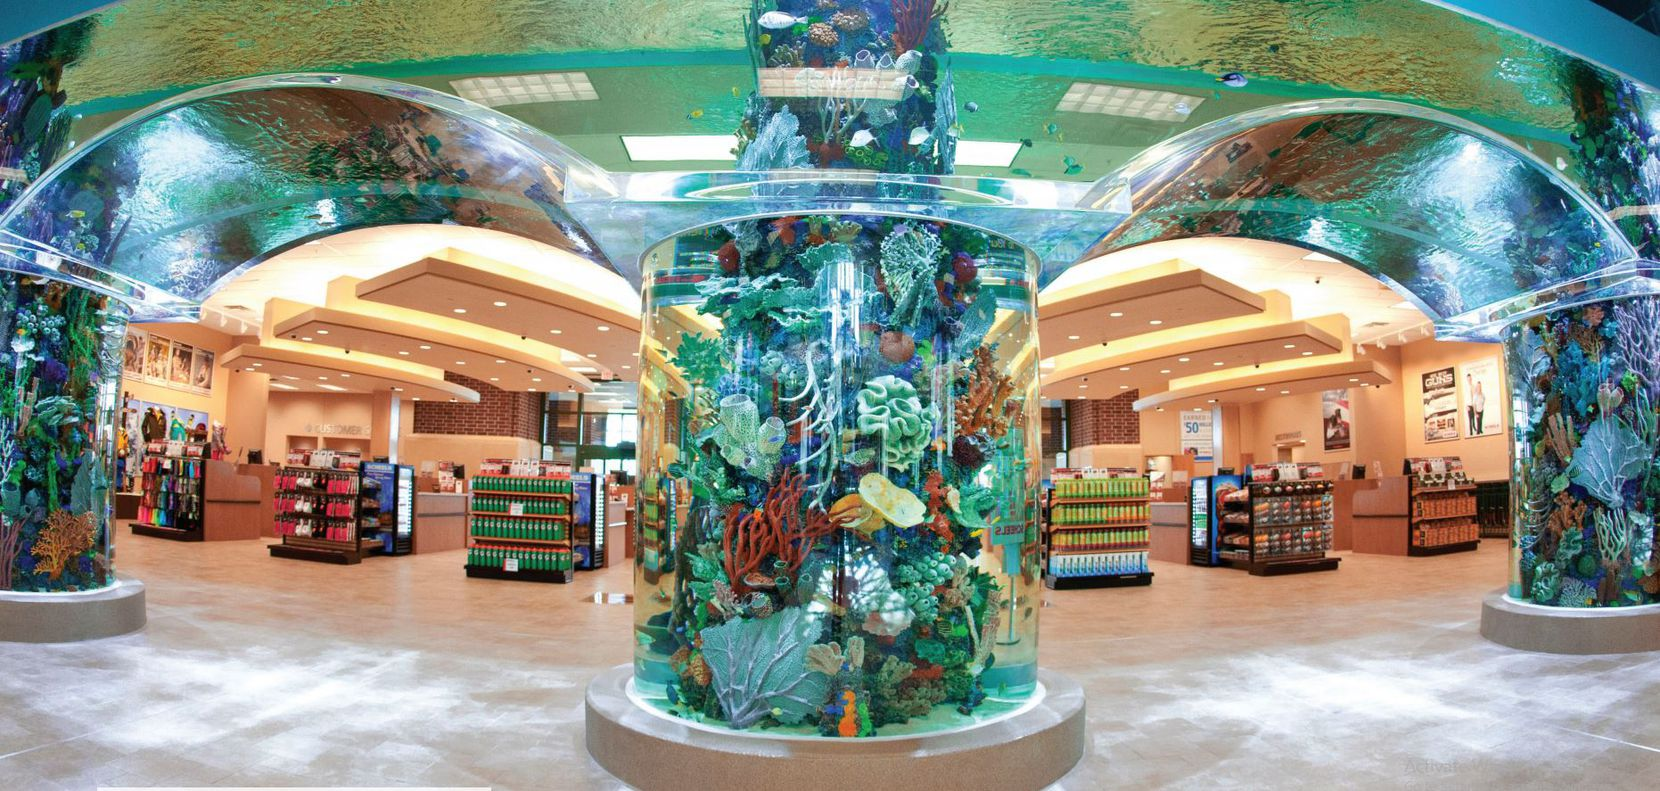 The Scheels store in The Colony's Grandscape development will house a 16,000-gallon, saltwater aquarium and a 65-foot Ferris wheel.